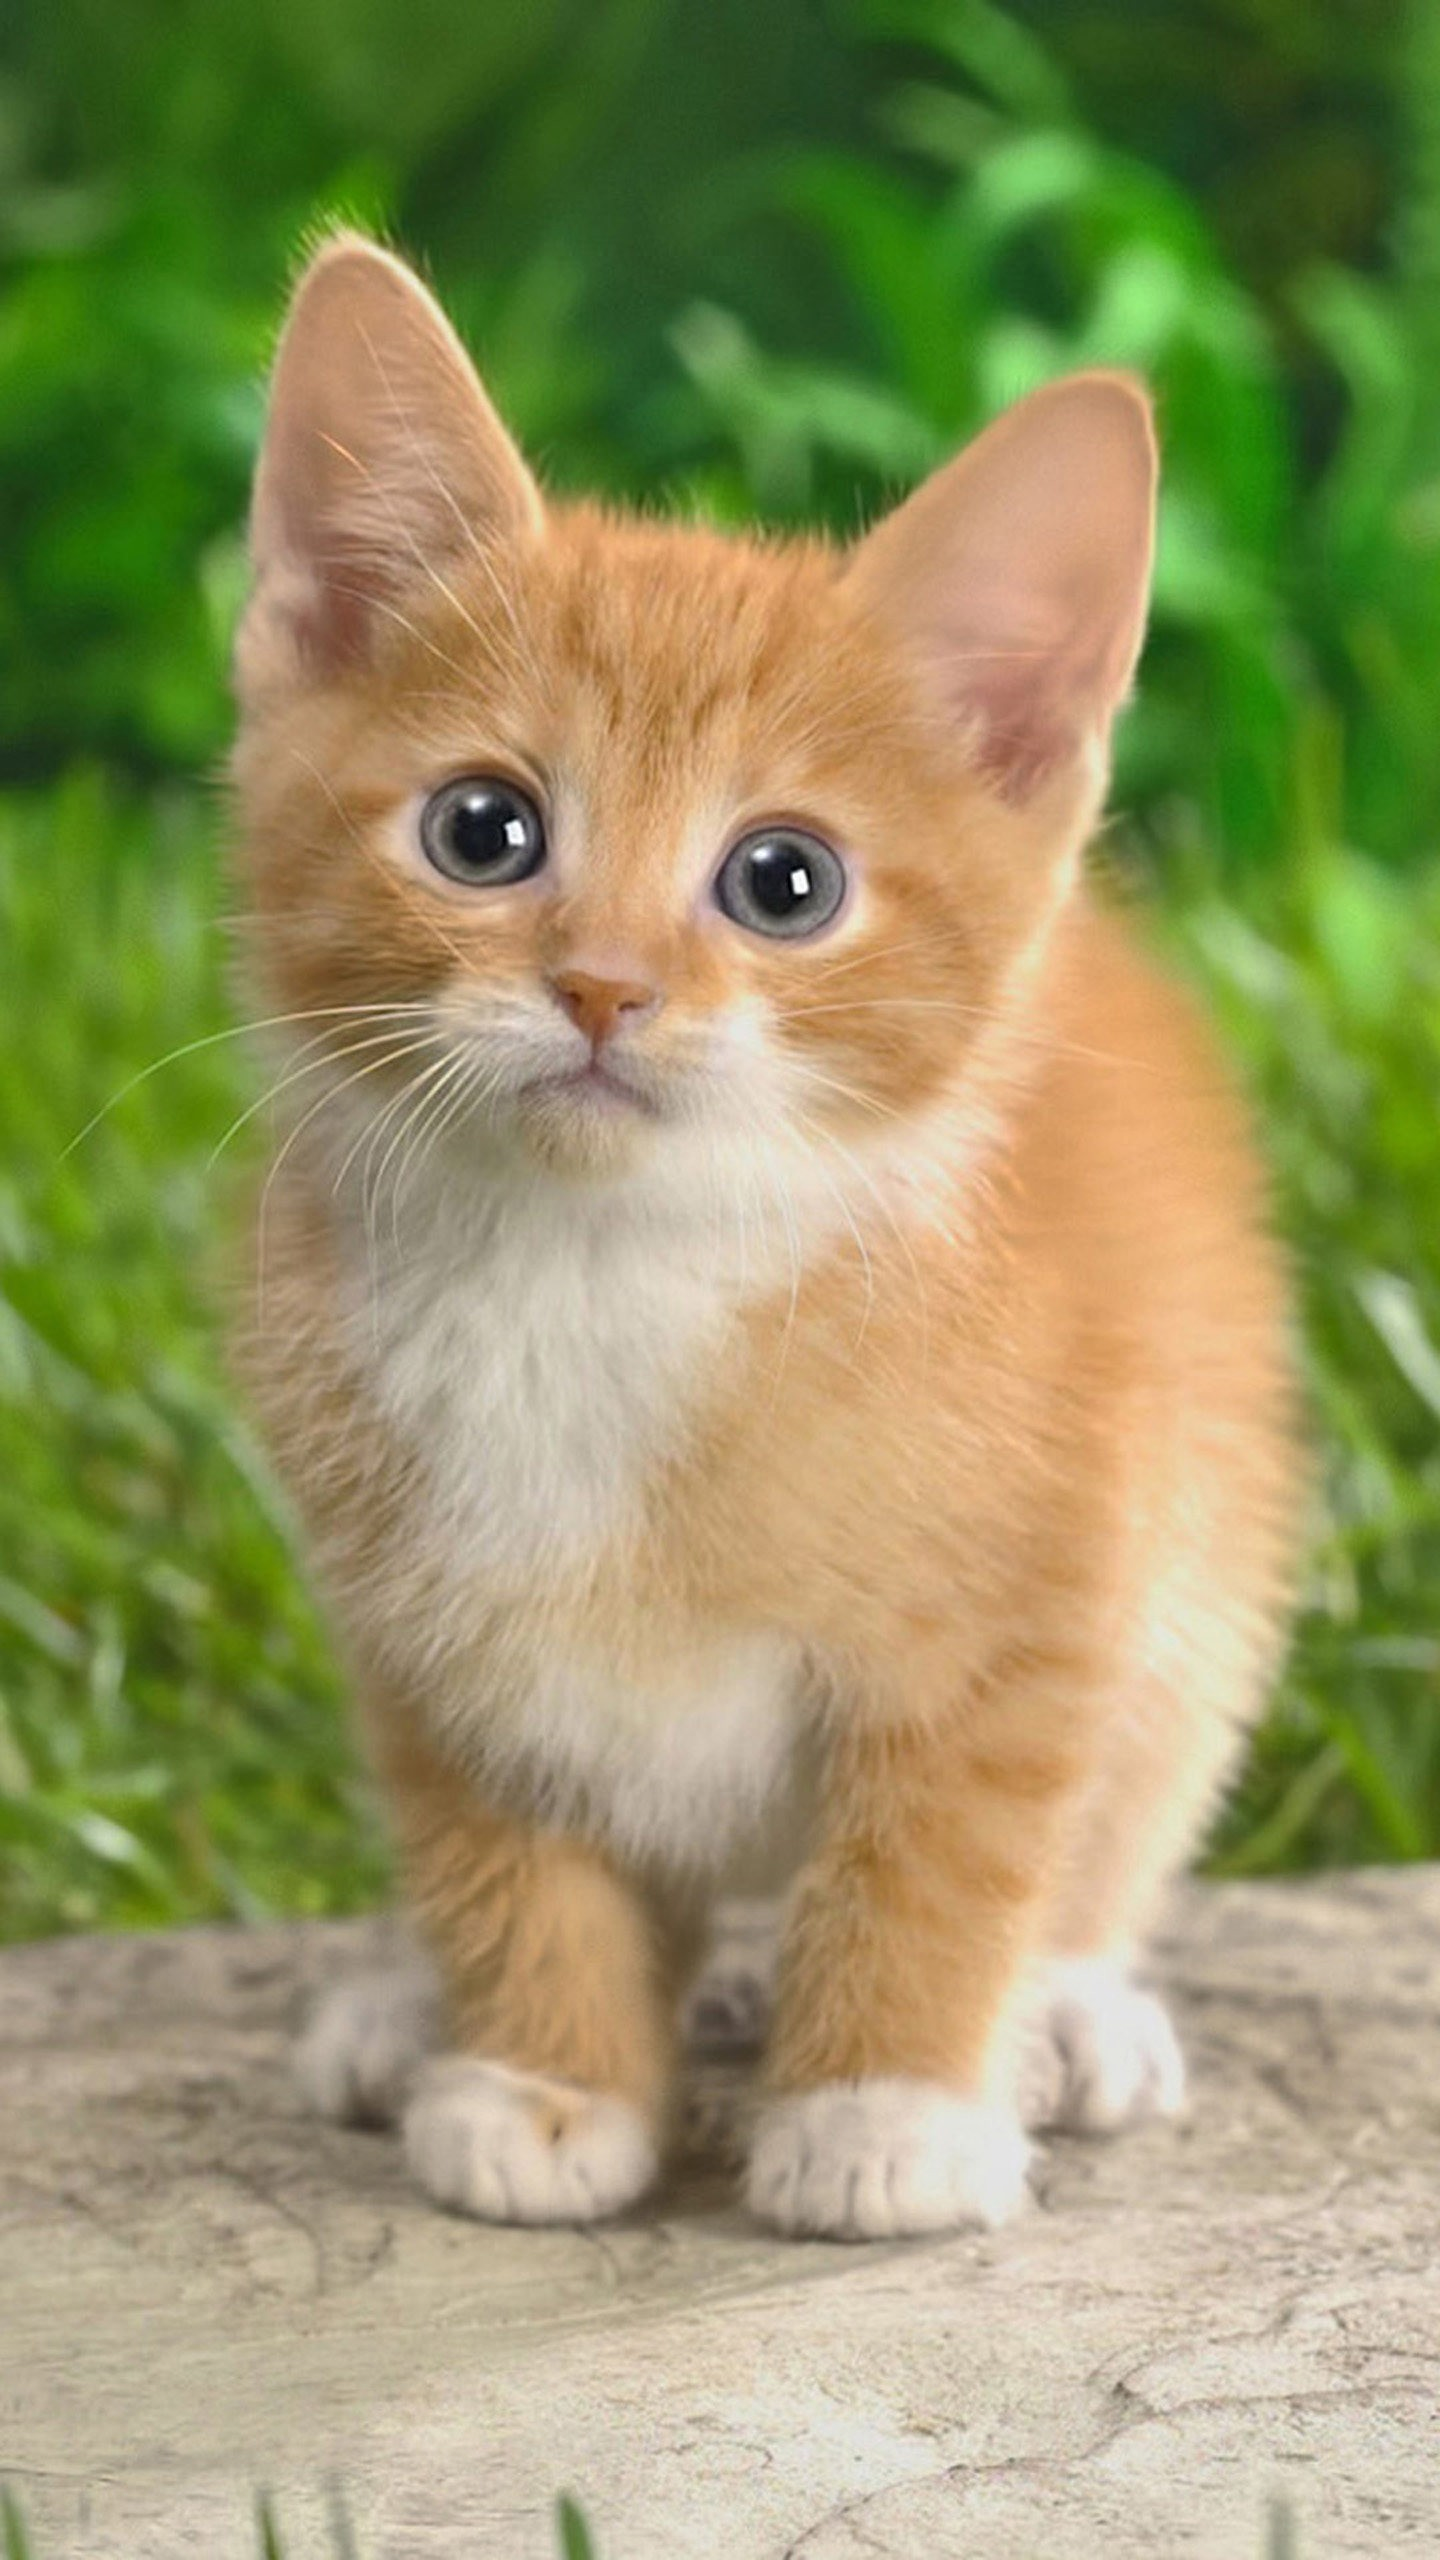 Cute Cats Hd Wallpapers For Galaxy S7 Wallpapers Pictures